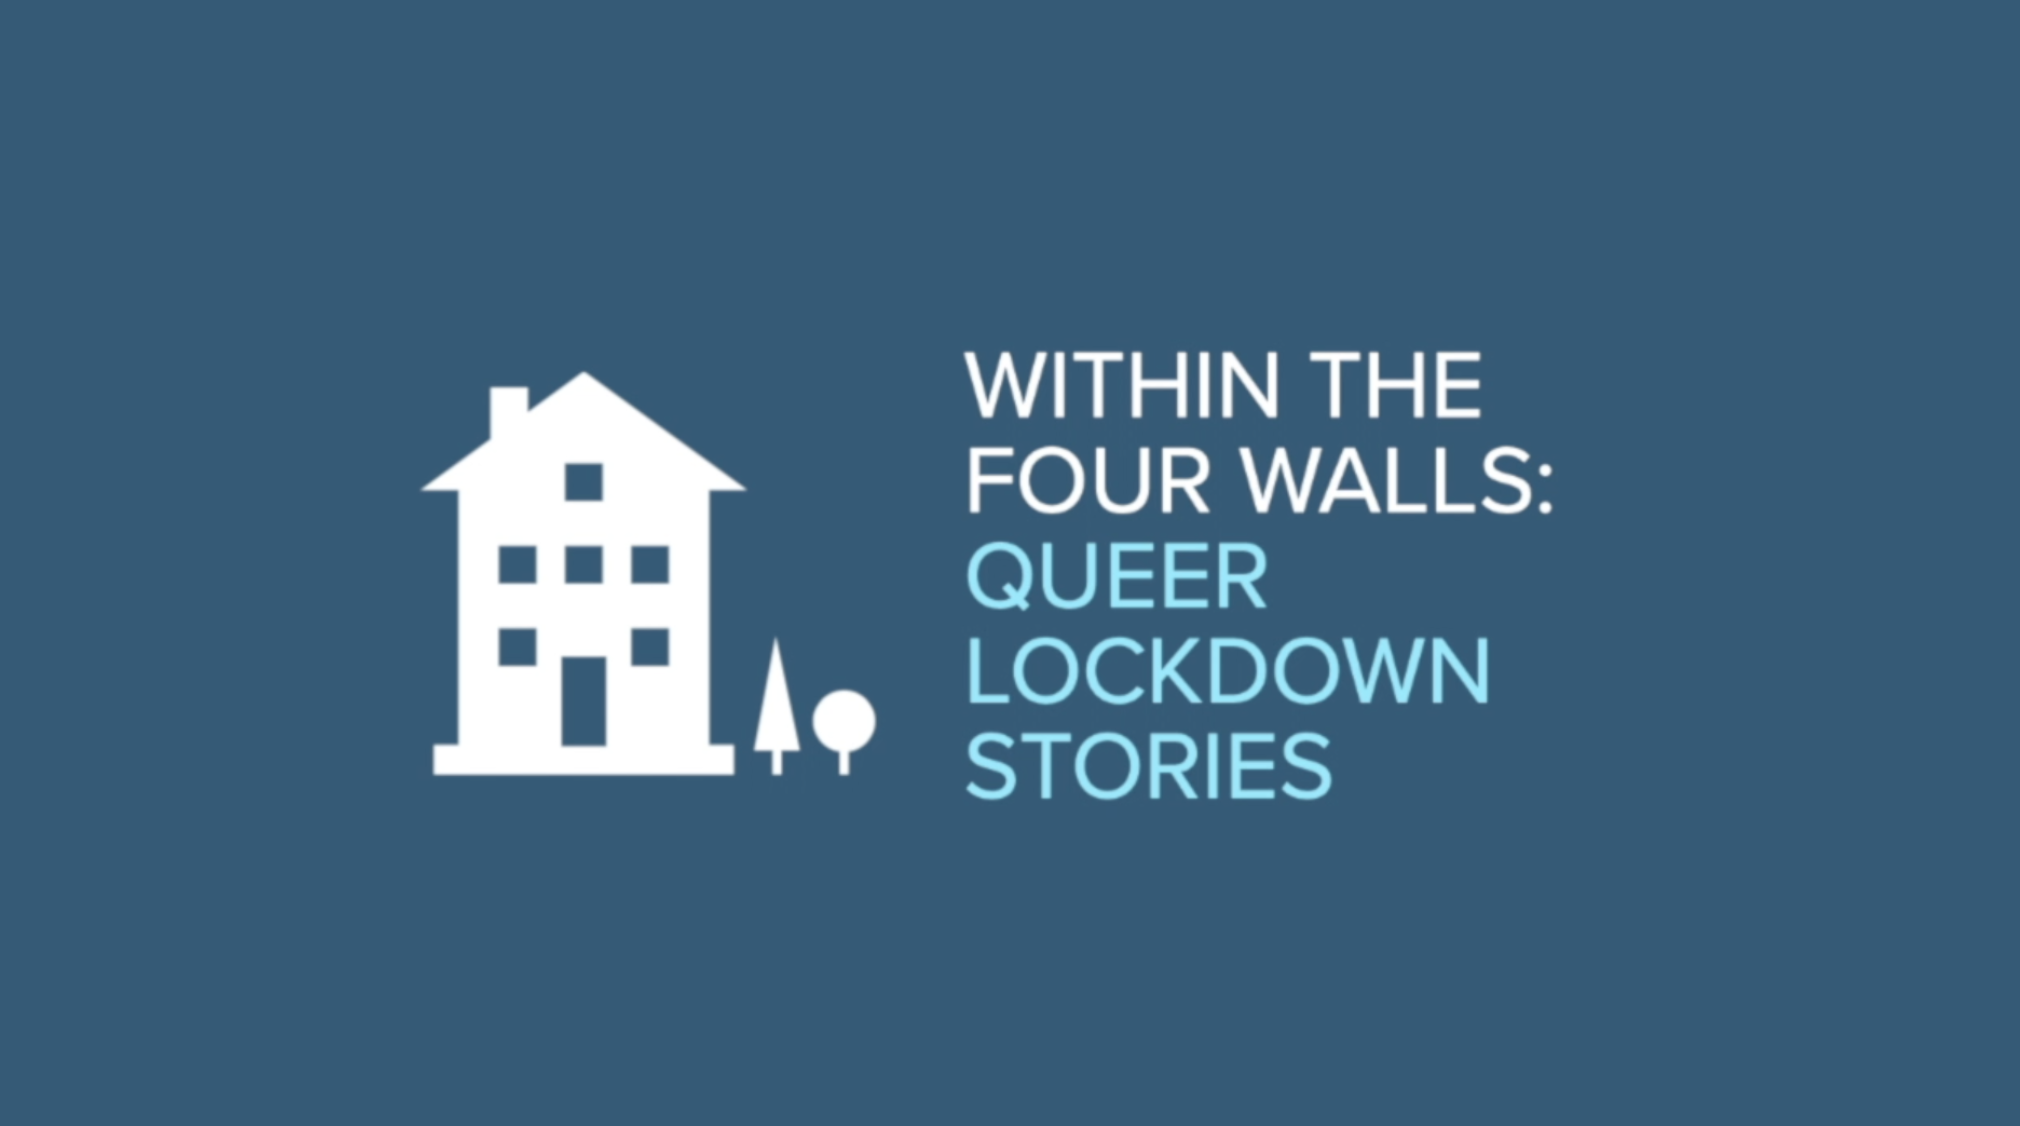 Within the four walls logo